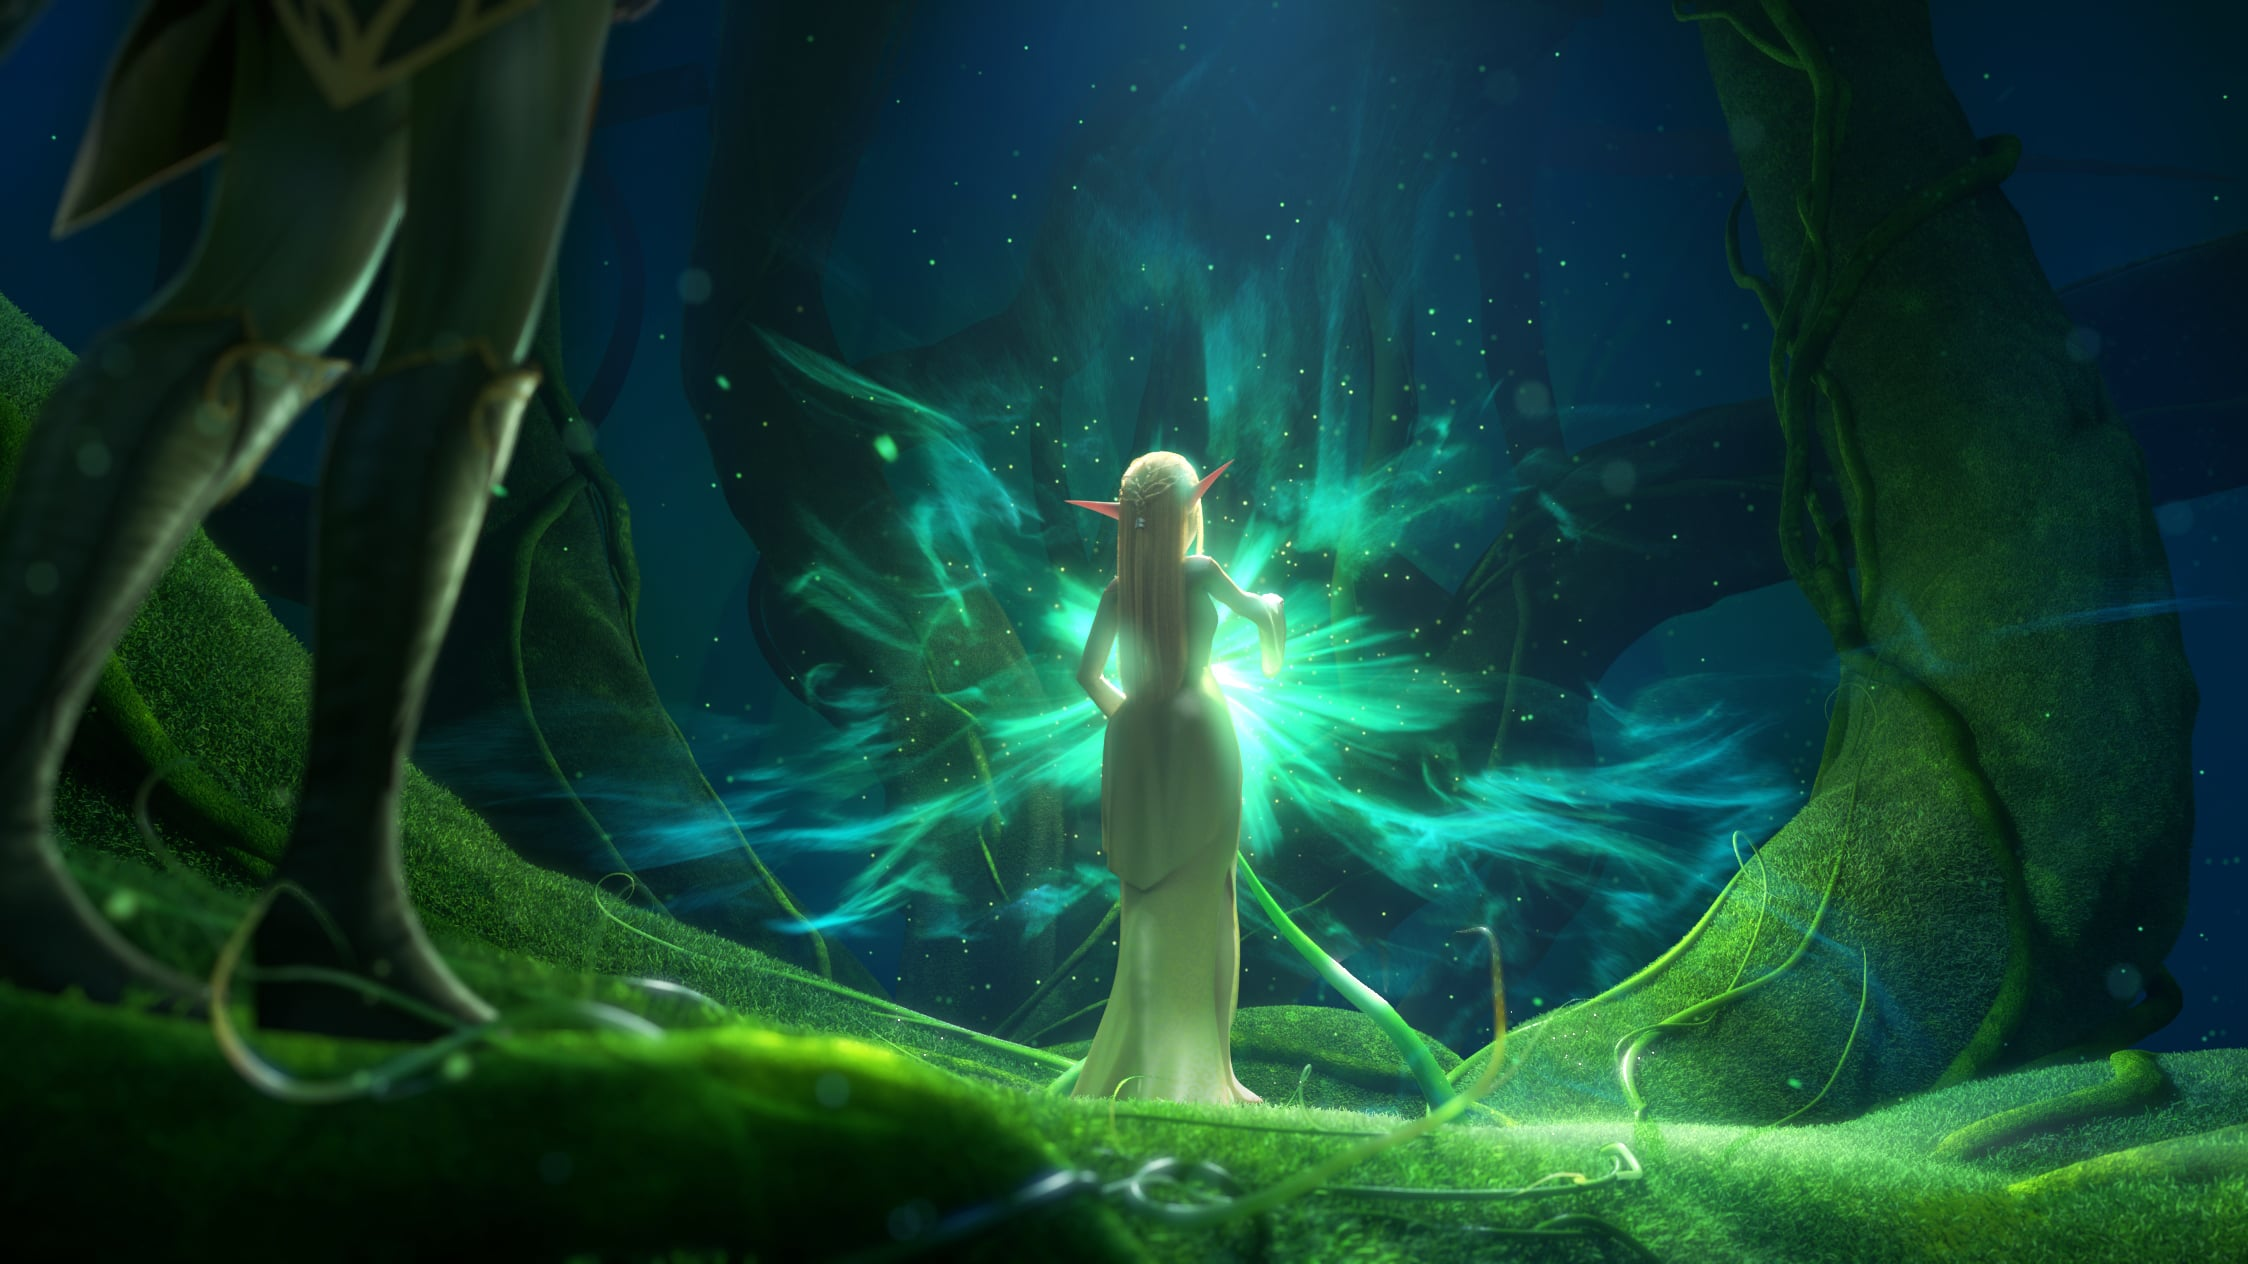 Throne of Elves HD Wallpaper Background Image 2248x1264 ID 2248x1264